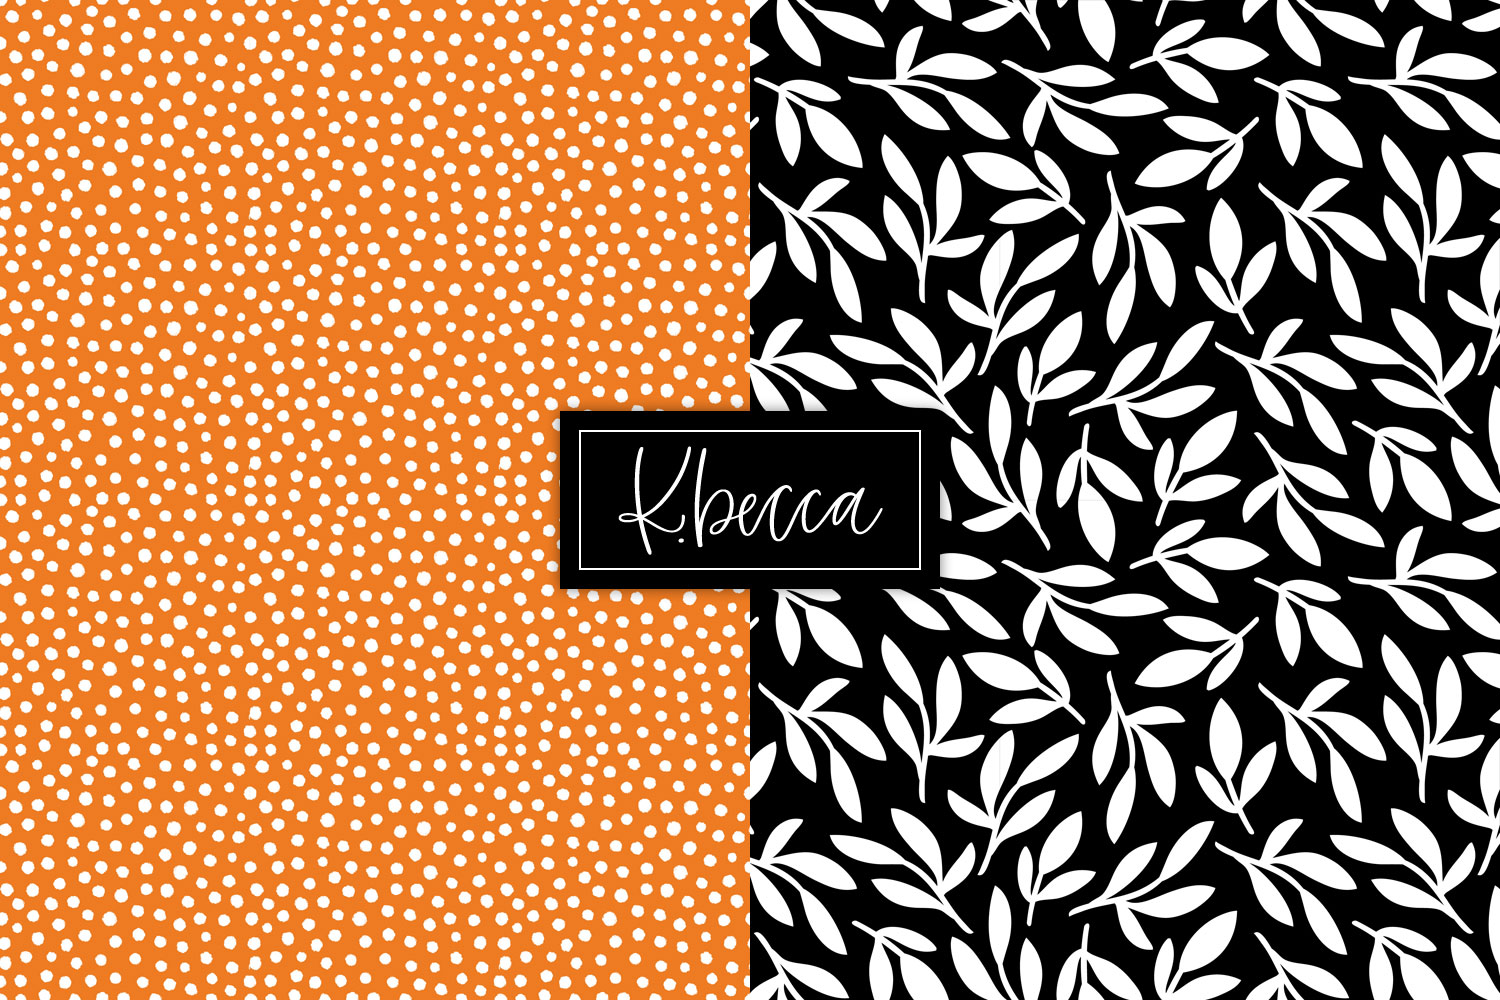 Spooky Halloween Background Patterns Seamless example image 4